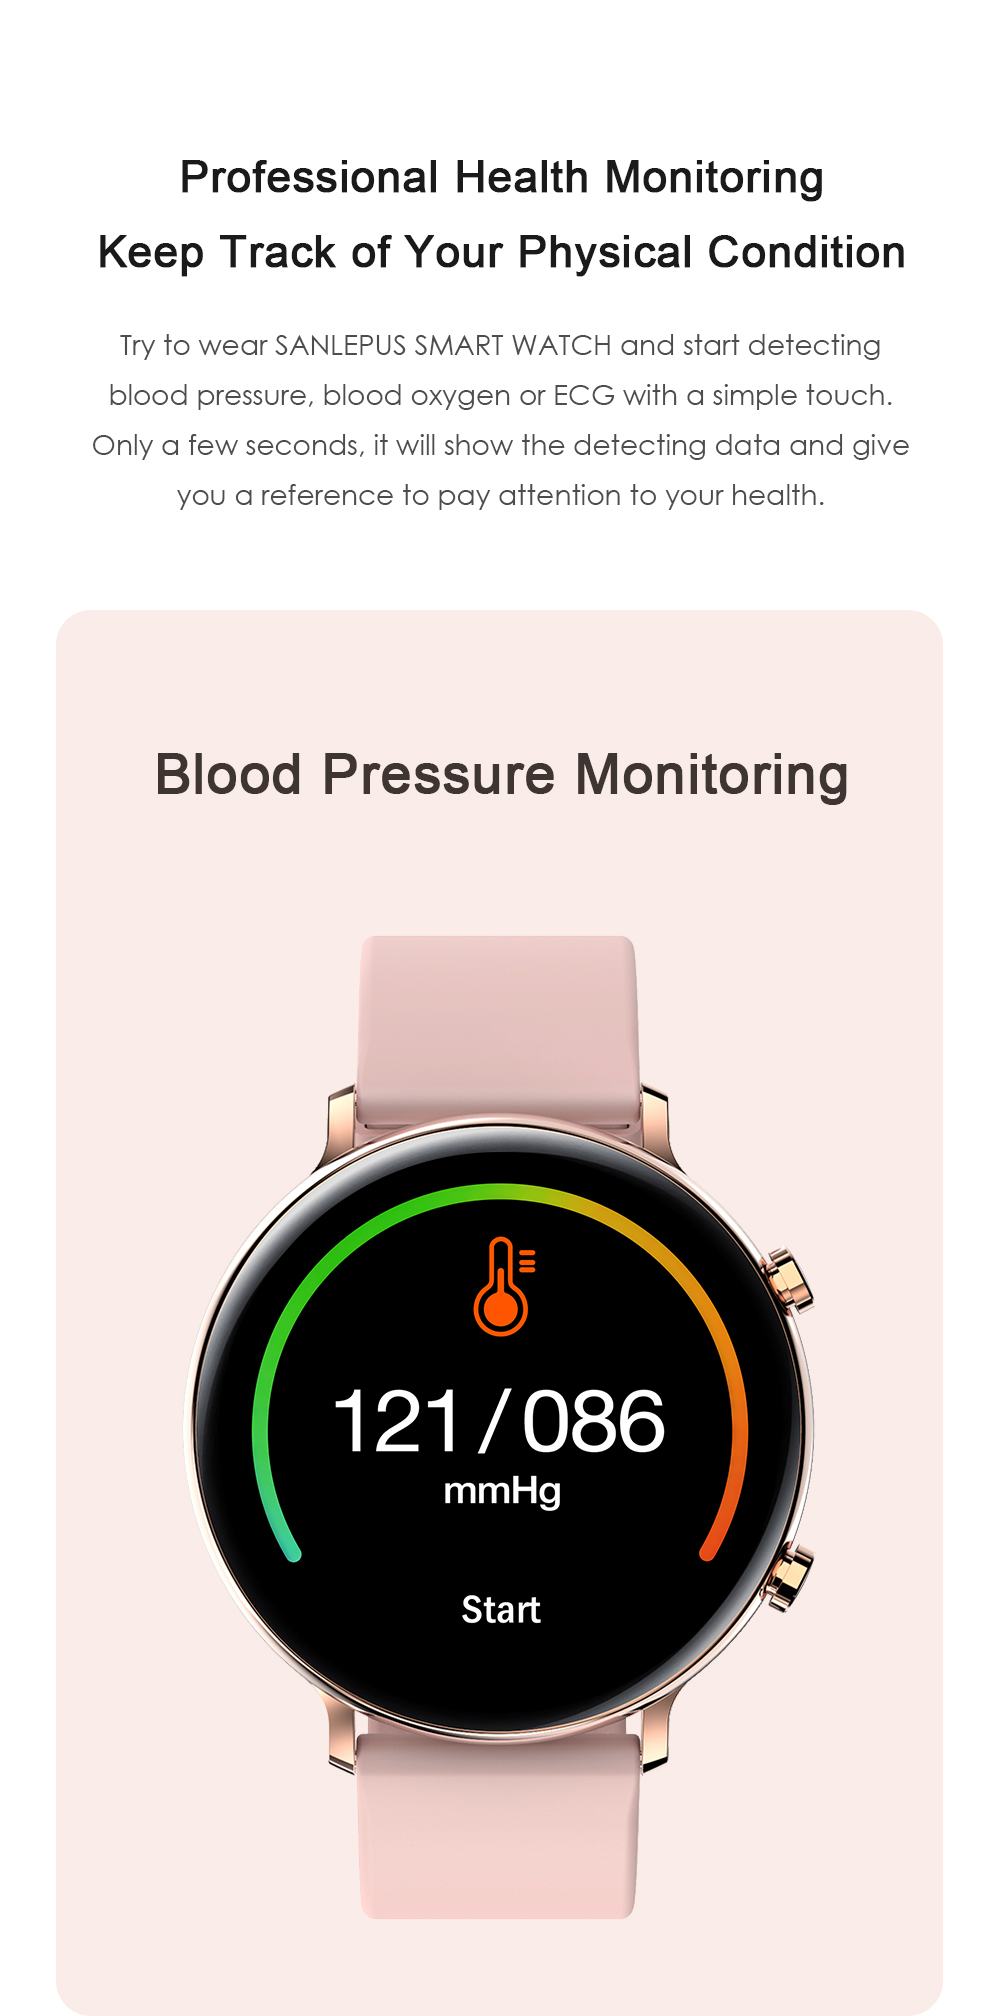 H4ccf8b83a2444ba4af5be53af0f93fe7I SANLEPUS ECG PPG Smart Watch With Dial Calls 2021 New Men Women Smartwatch Blood Pressure Monitor For Android Samsung Apple